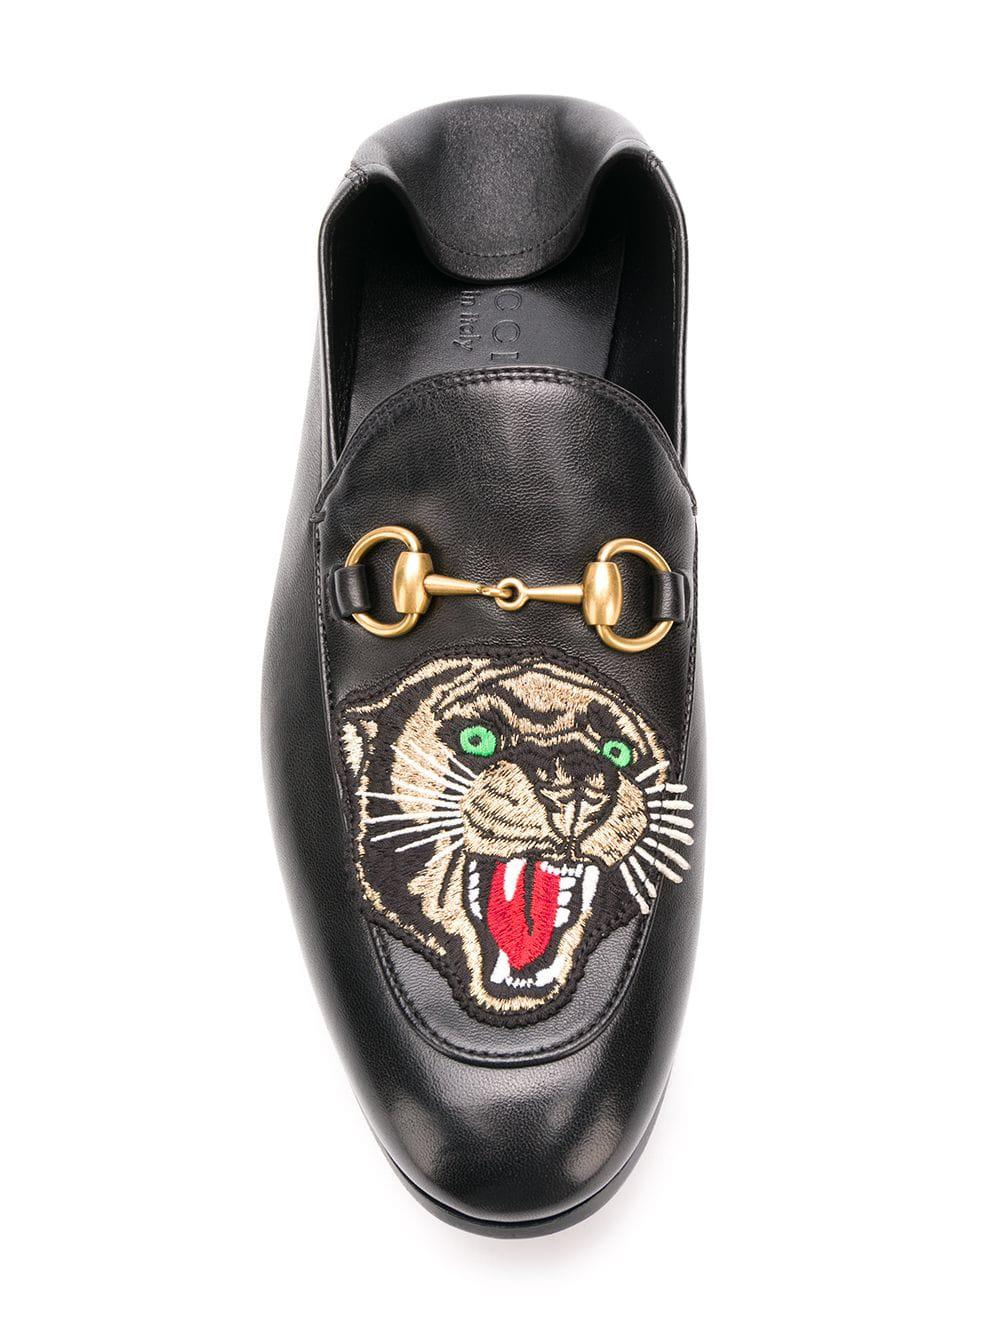 46e60c00fc3 Lyst - Gucci Panther Embroidered Horsebit Loafers in Black for Men